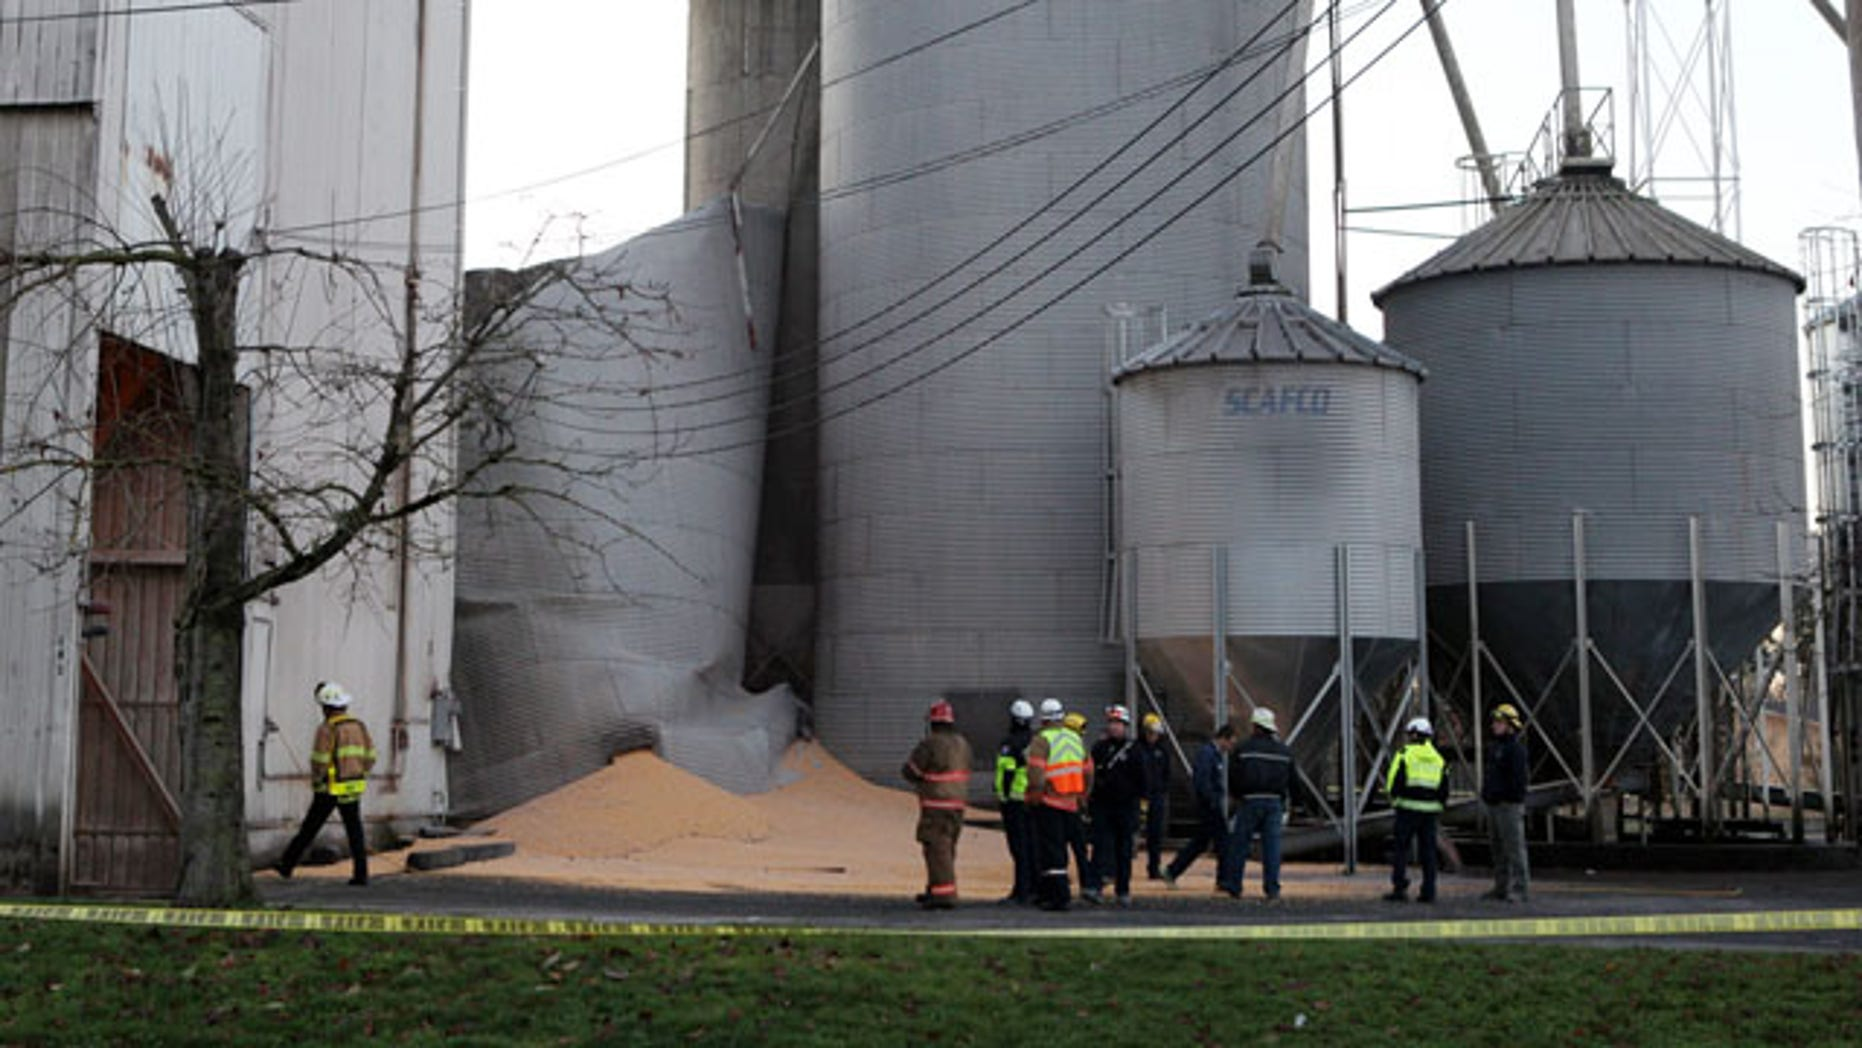 December 2, 2013: Emergency responders from the South Pierce Fire Department respond to a grain processing feed mill owned by Wilcox Farms in downtown Roy, Wash., after one of its silos collapsed. (AP Photo/The Olympian)